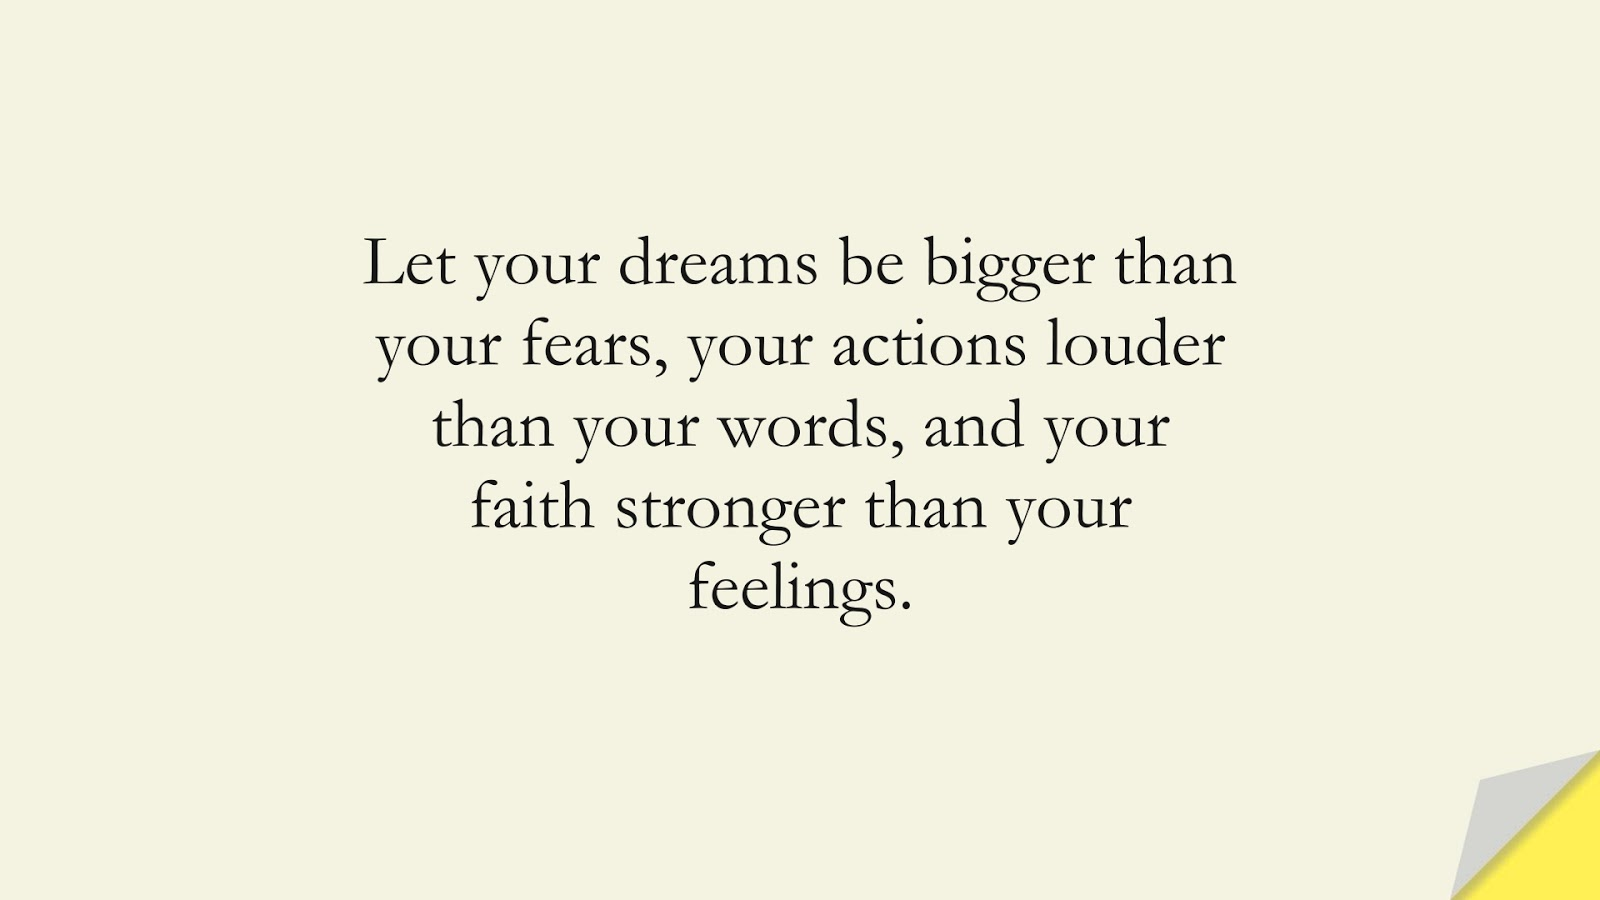 Let your dreams be bigger than your fears, your actions louder than your words, and your faith stronger than your feelings.FALSE